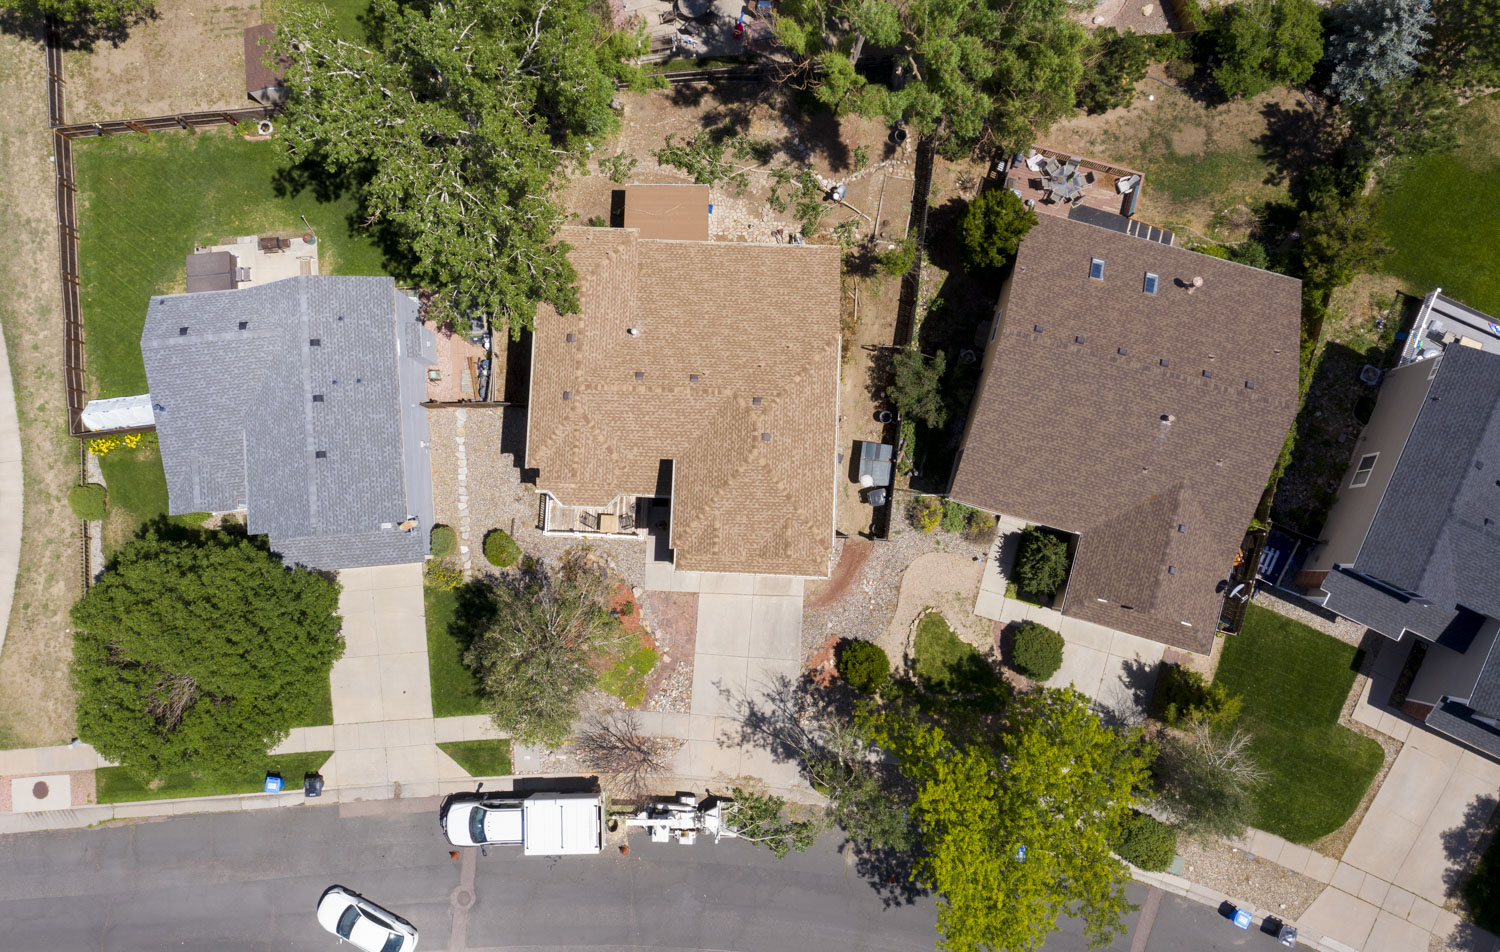 Aerial view of three residential homes. Good shot to survey roofs for damage. Tree service in action clearing branch and pruning for safety